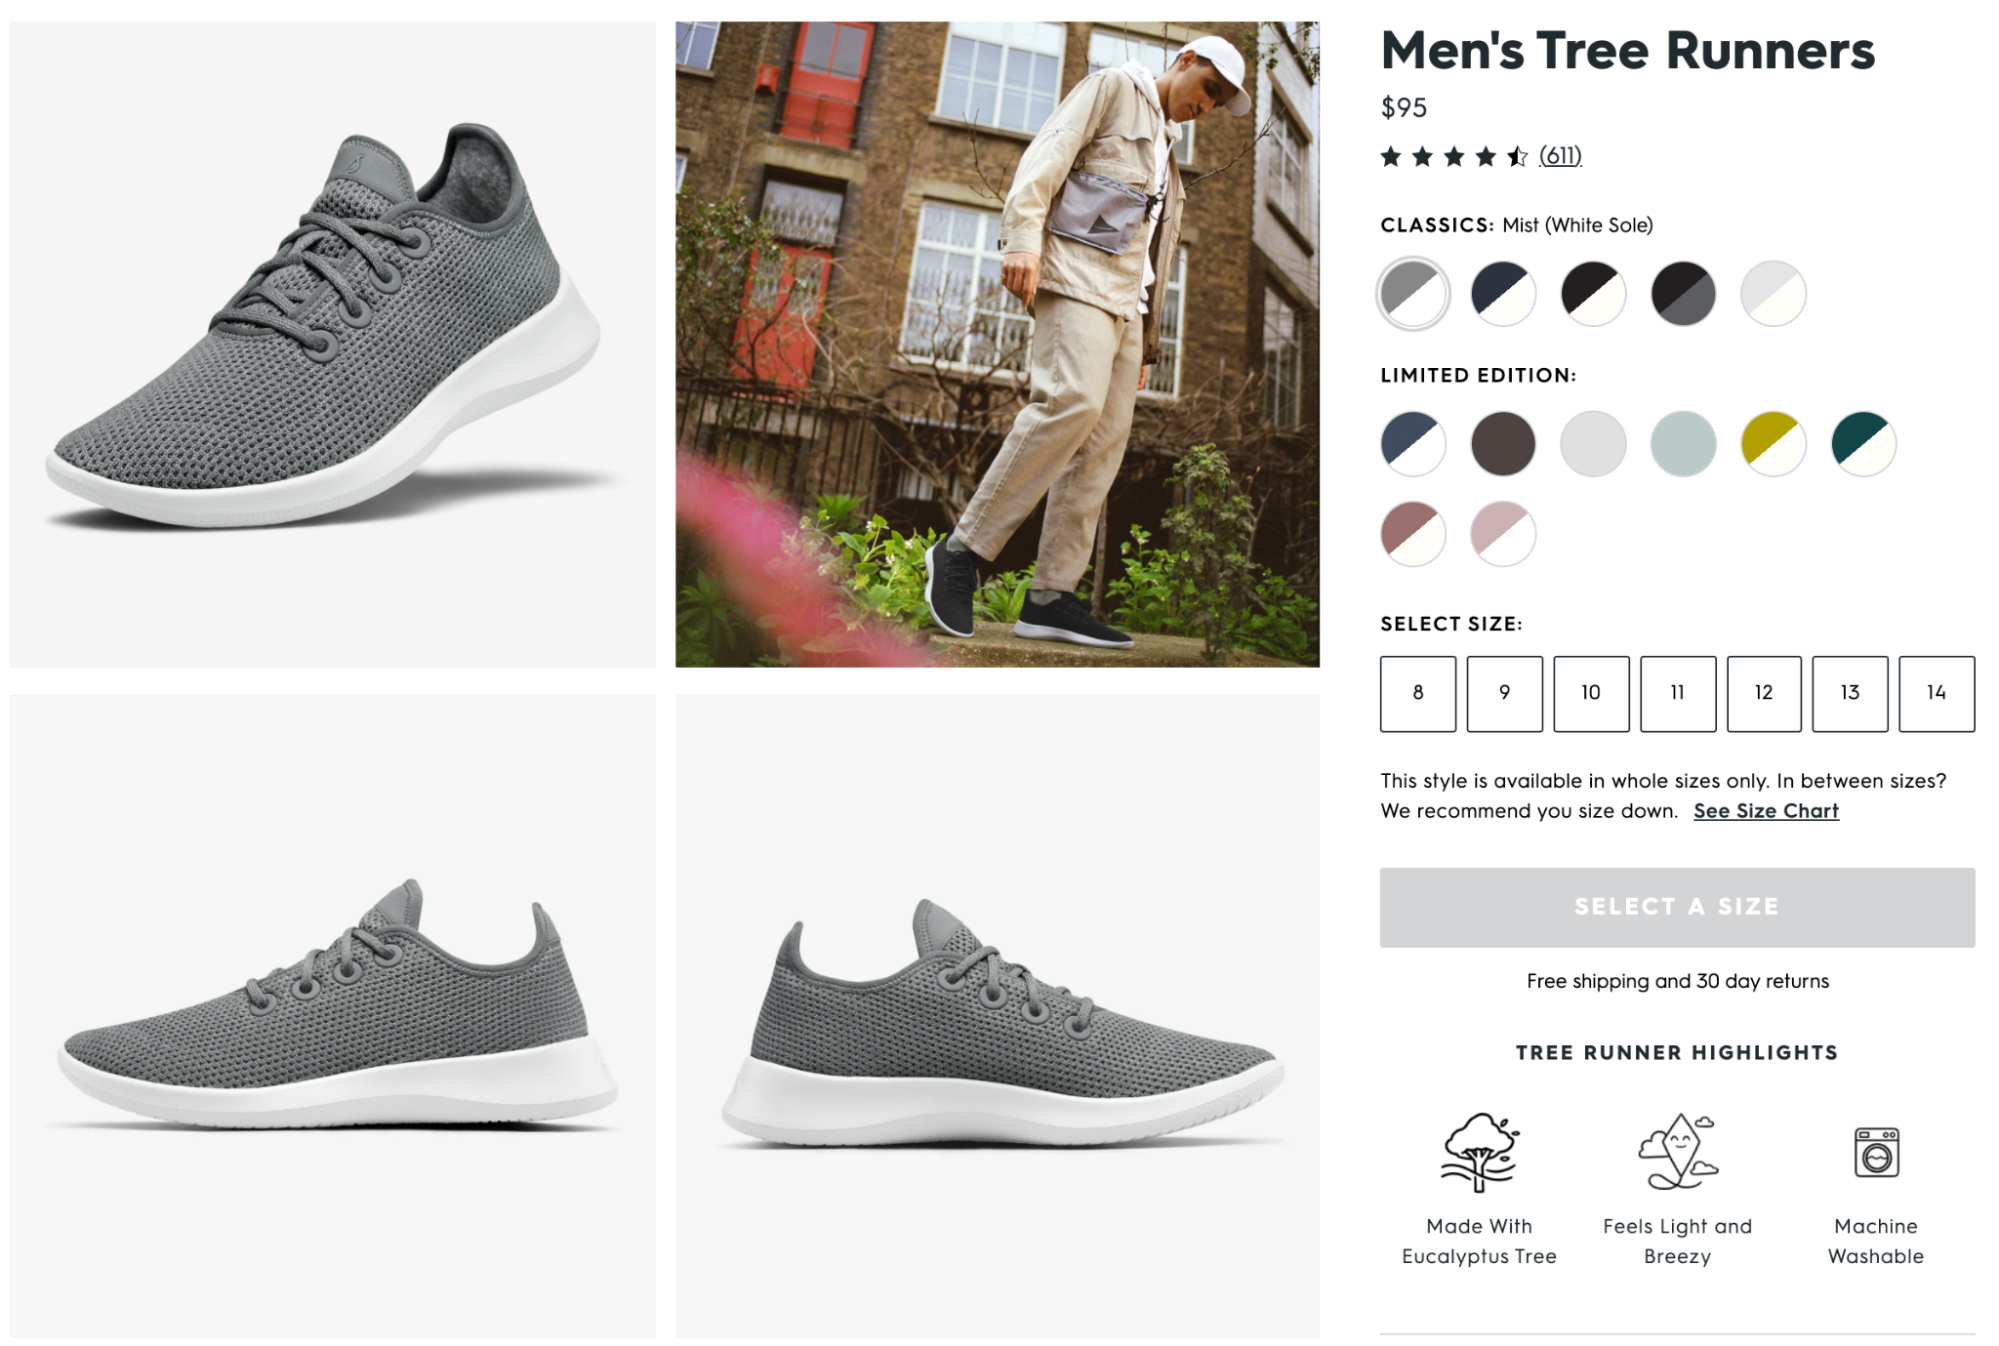 lifestyle image example by Allbirds